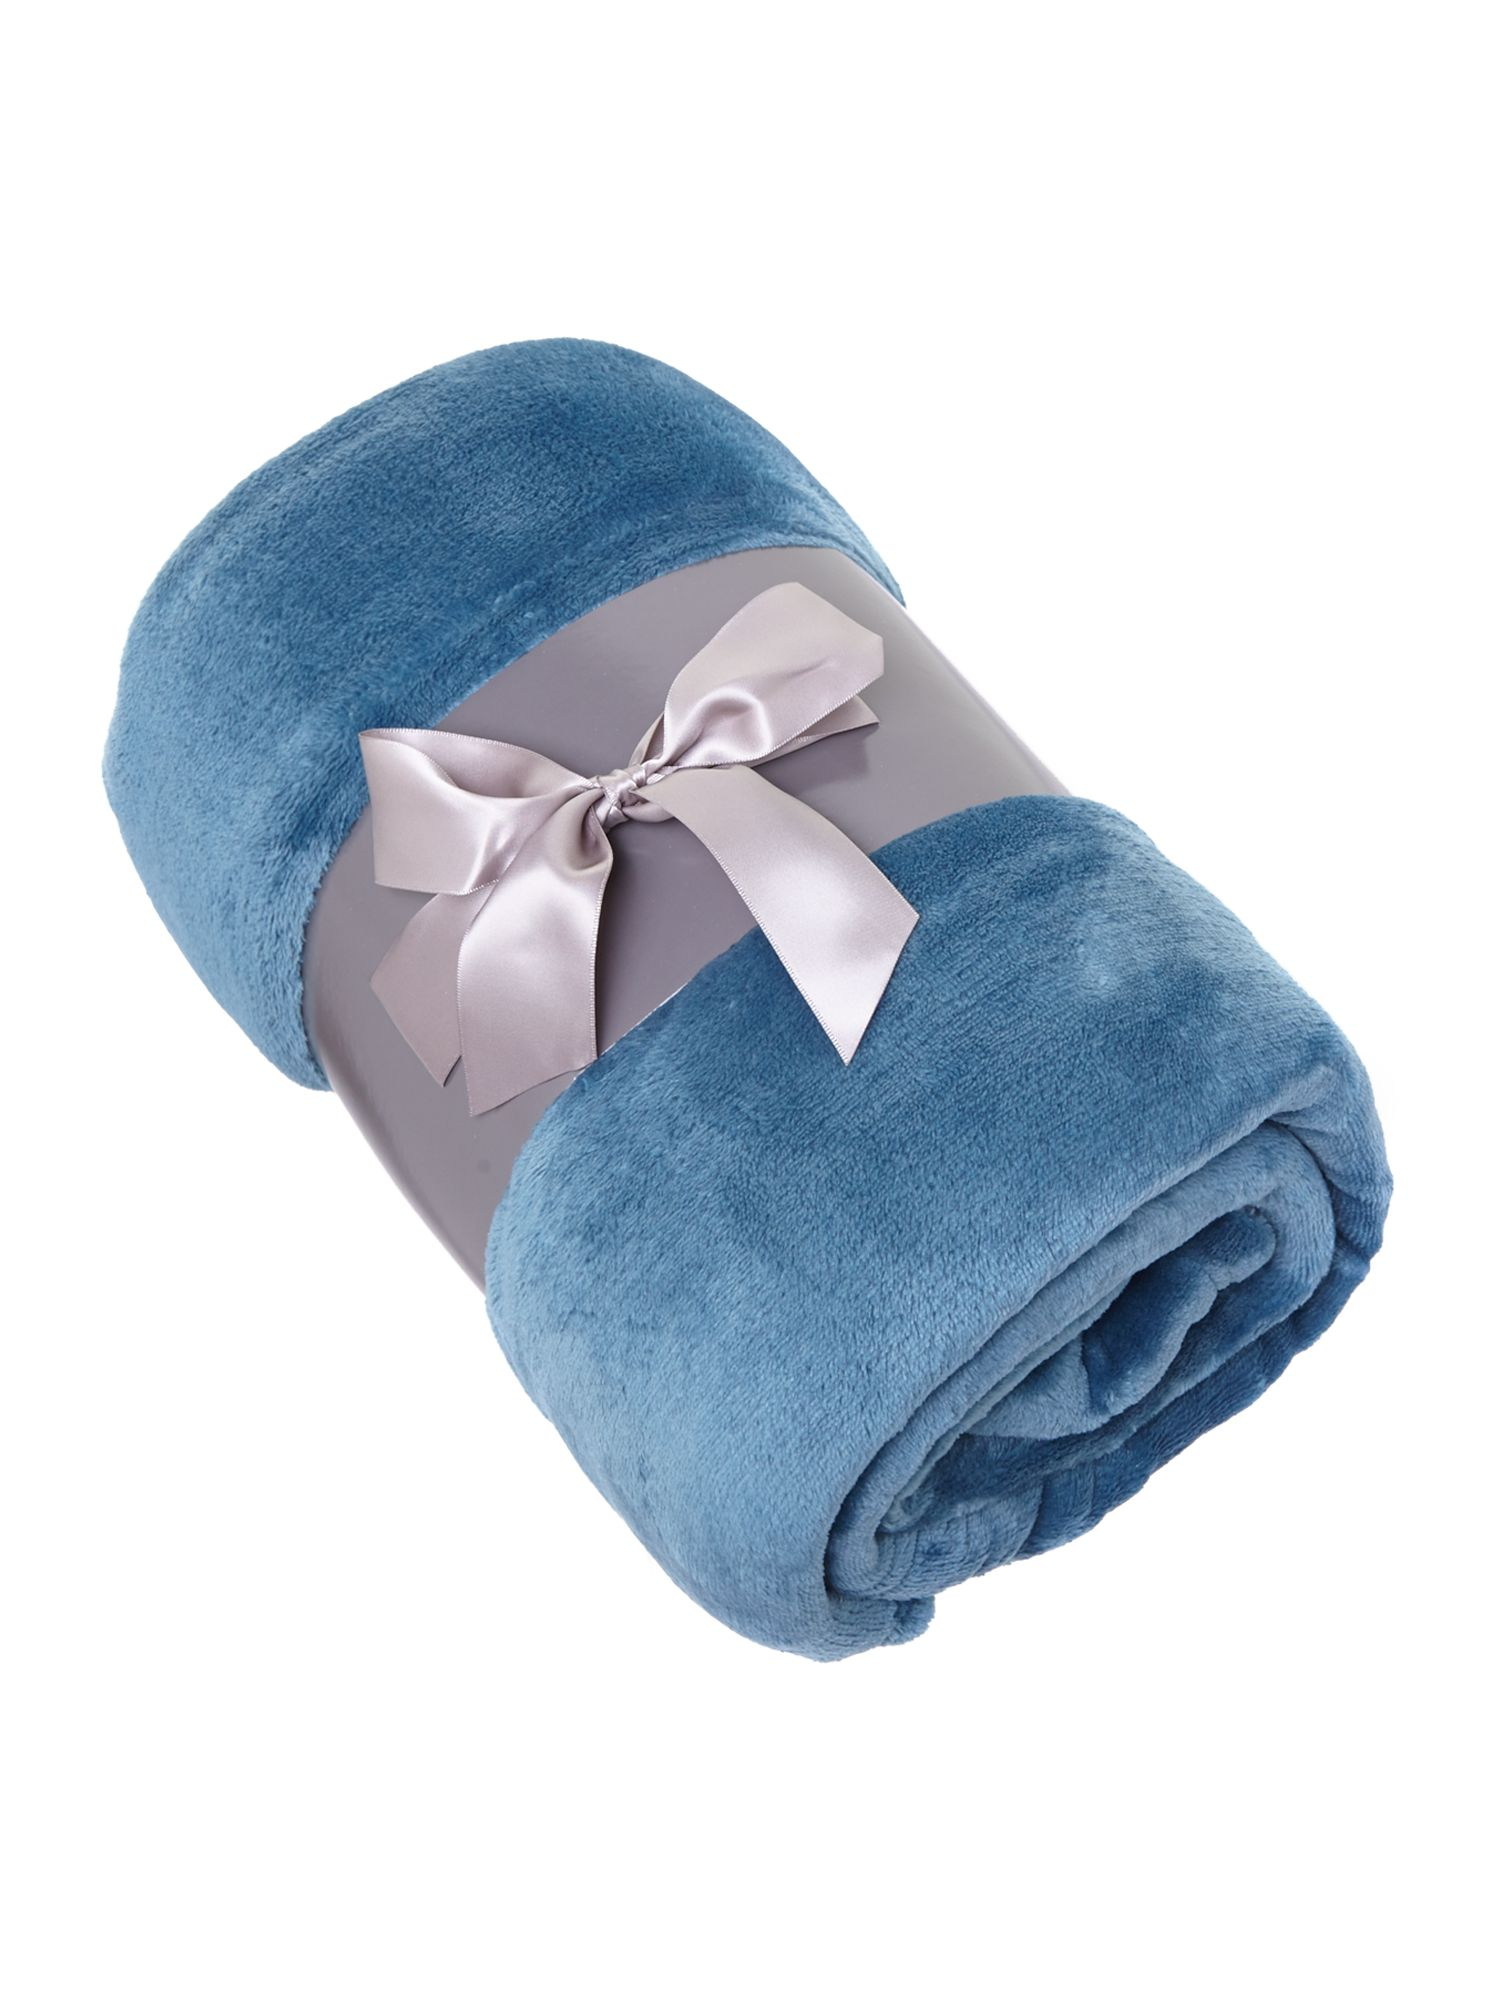 Fleece throw teal